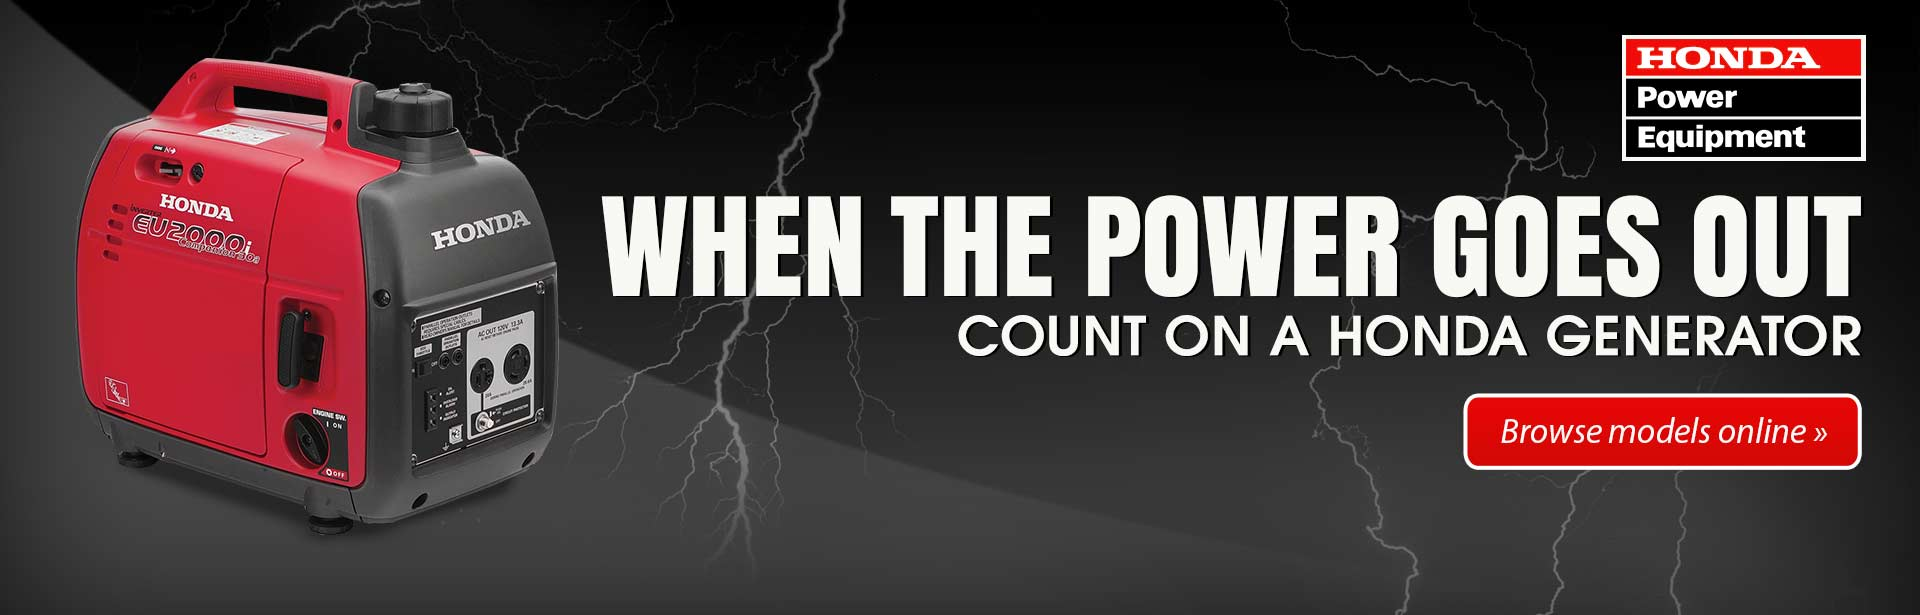 When the power goes out, count on a Honda generator. Click here to browse models online.